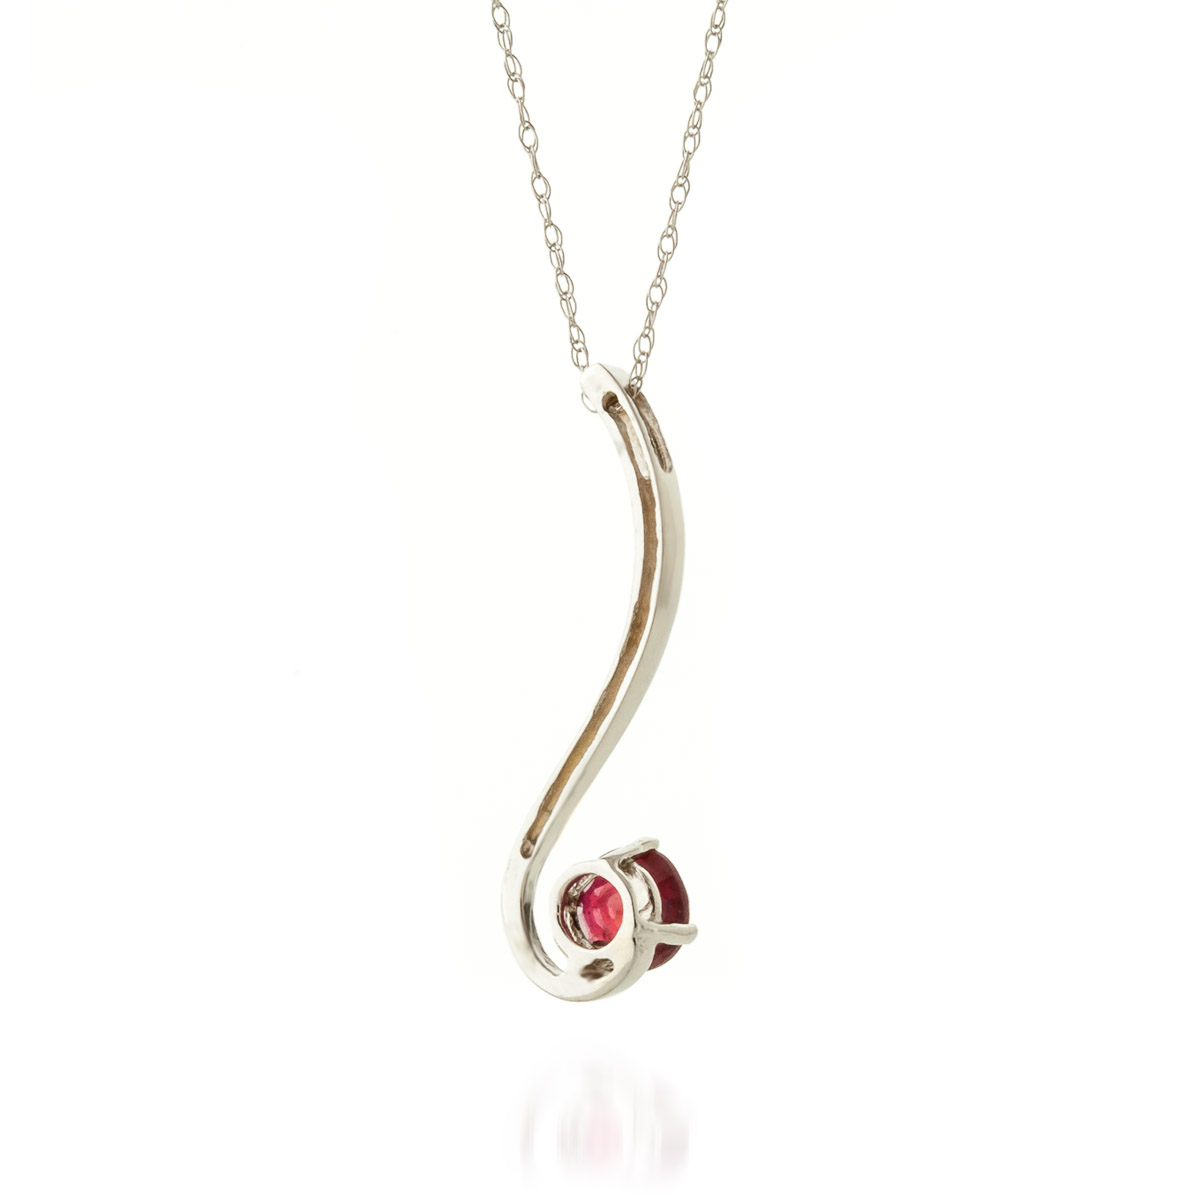 Round Brilliant Cut Ruby Pendant Necklace 0.55ct in 9ct White Gold